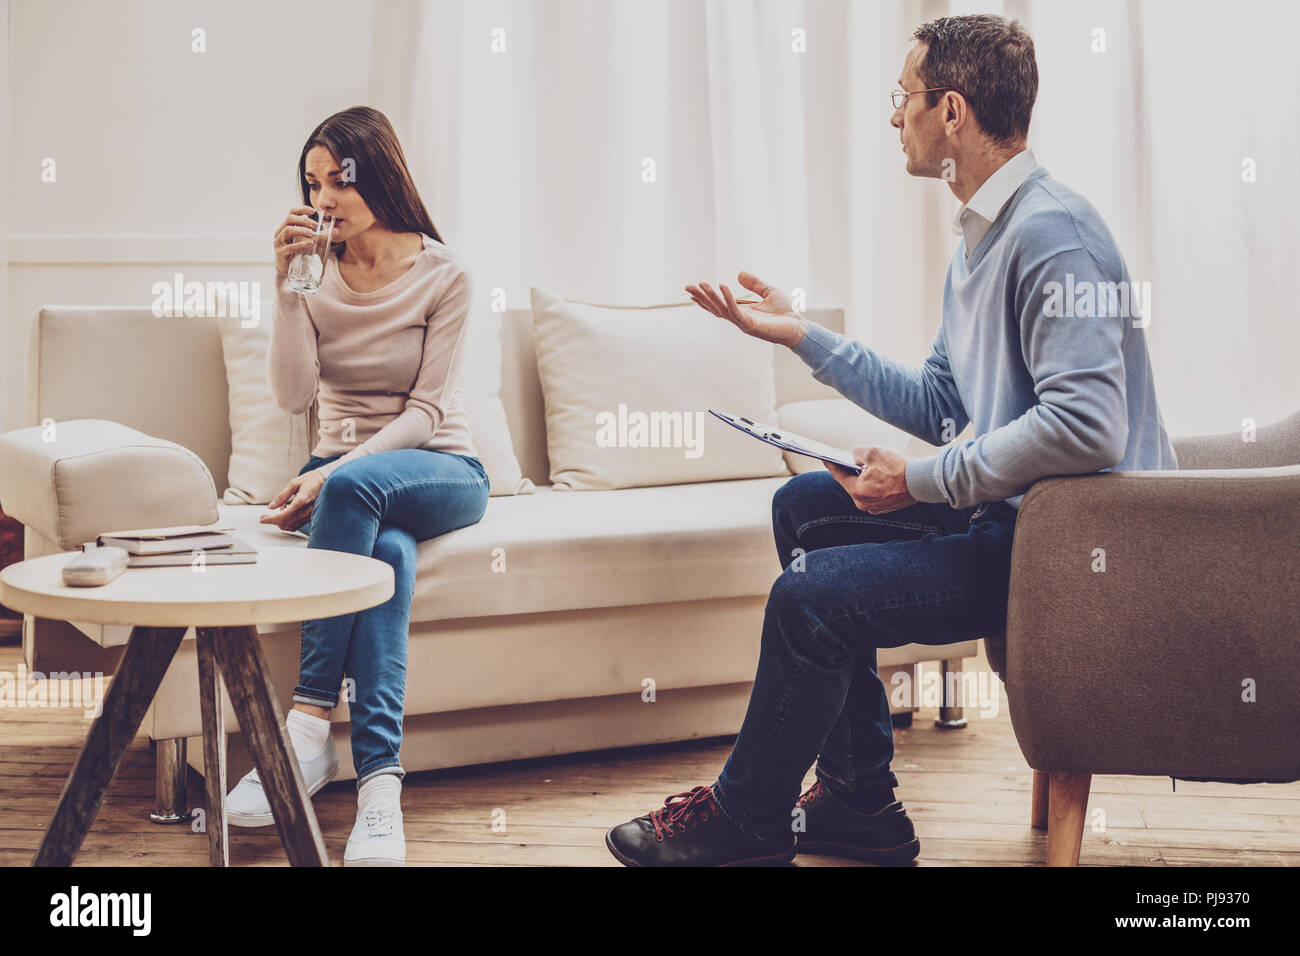 Professional male therapist helping his patient - Stock Image